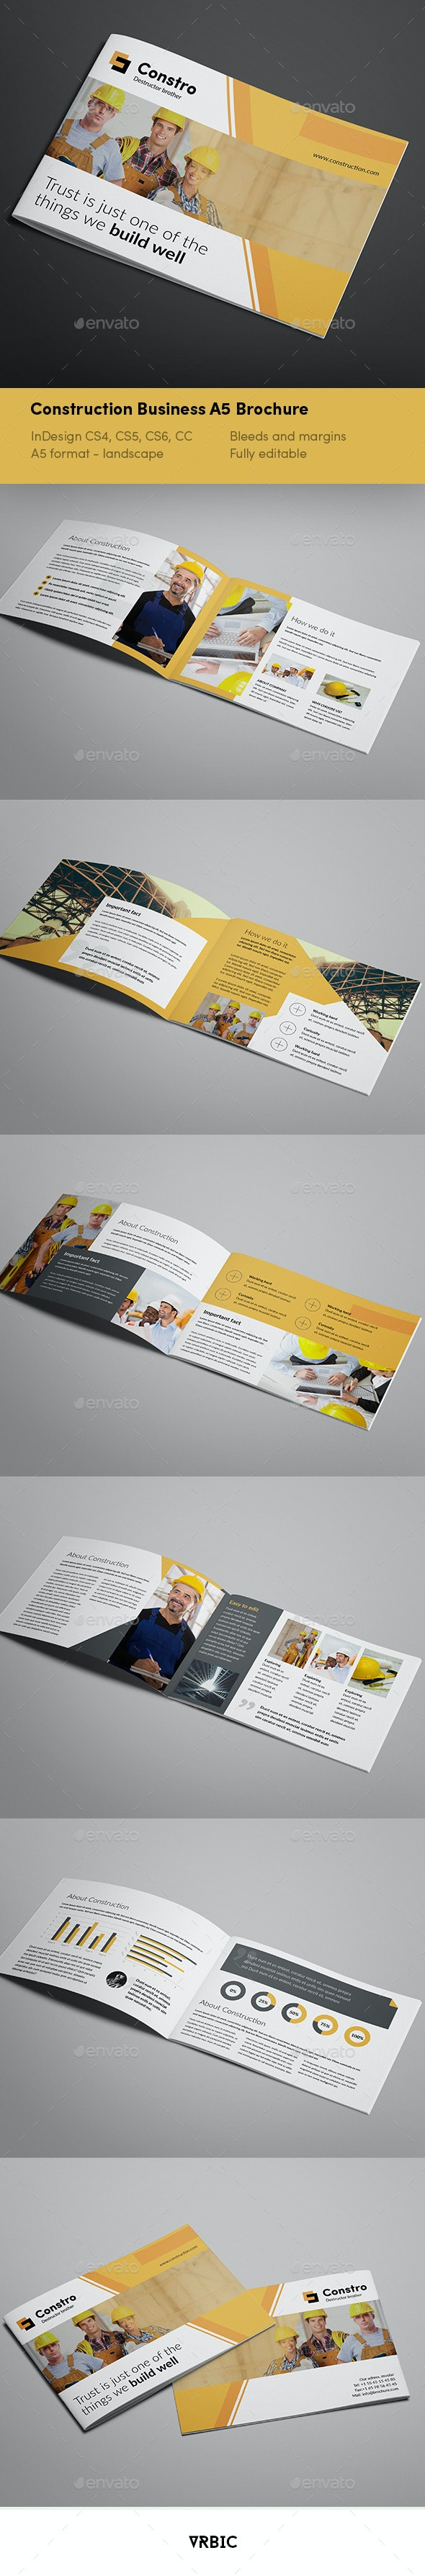 Construction Business A5 Brochure - Brochures Print Templates